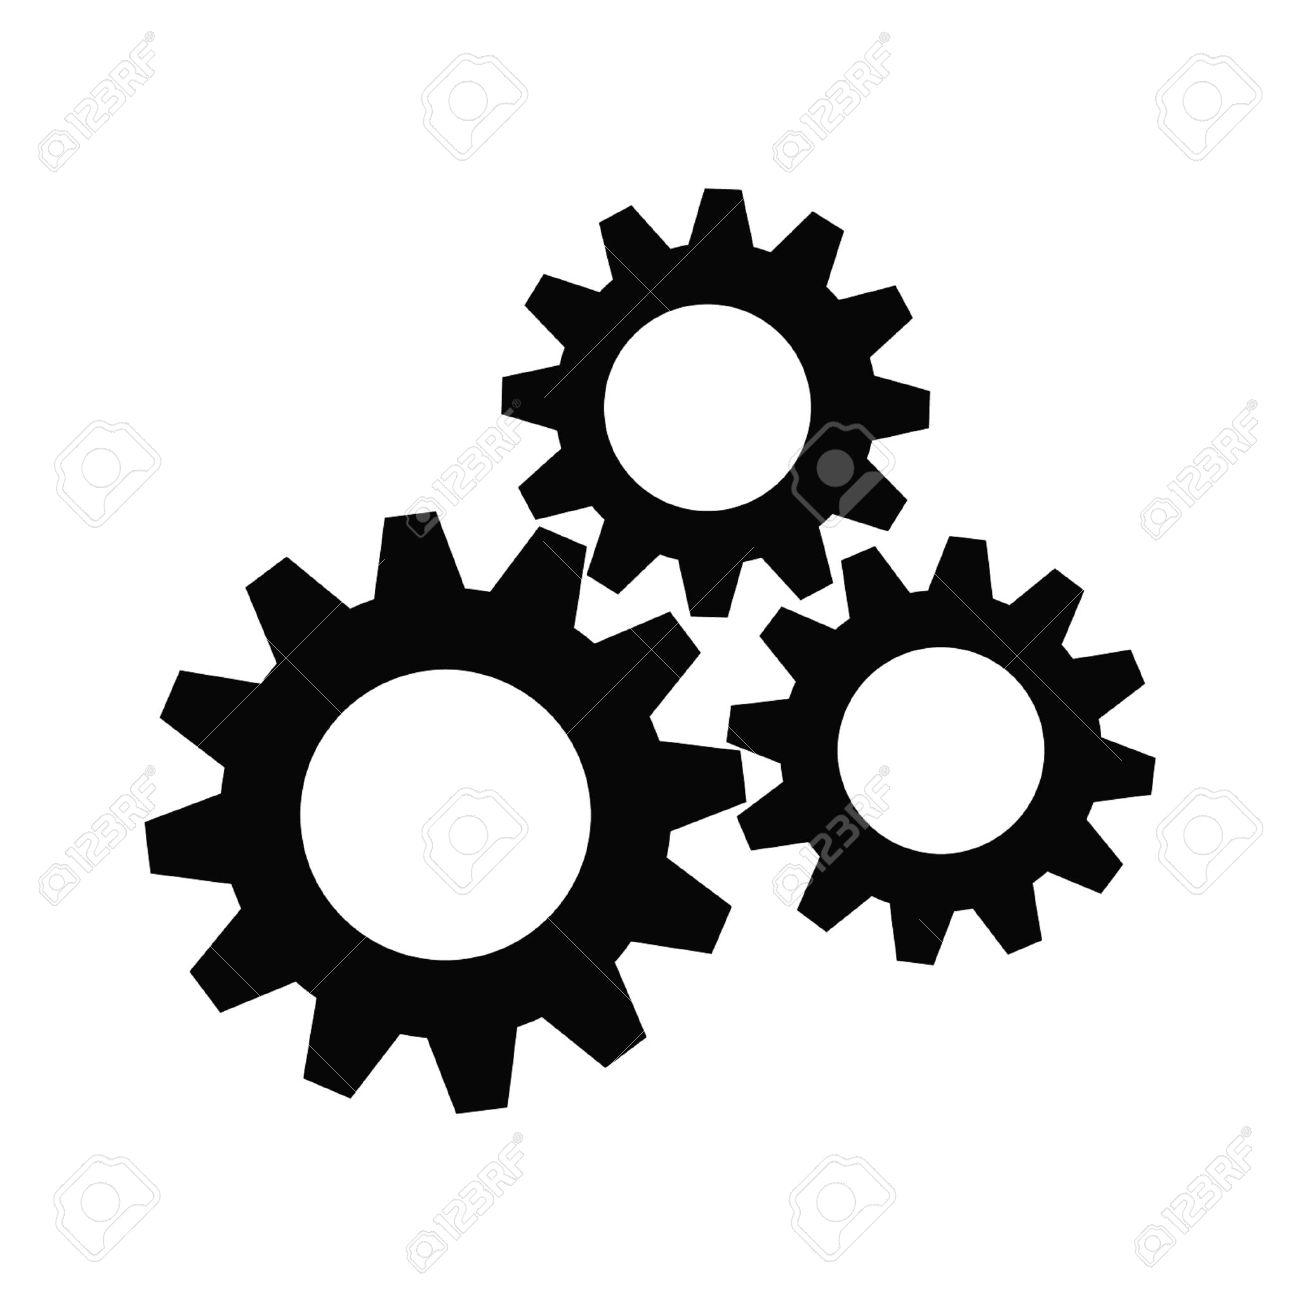 Gear collection. Set of gear wheels. Black cogs on white background.